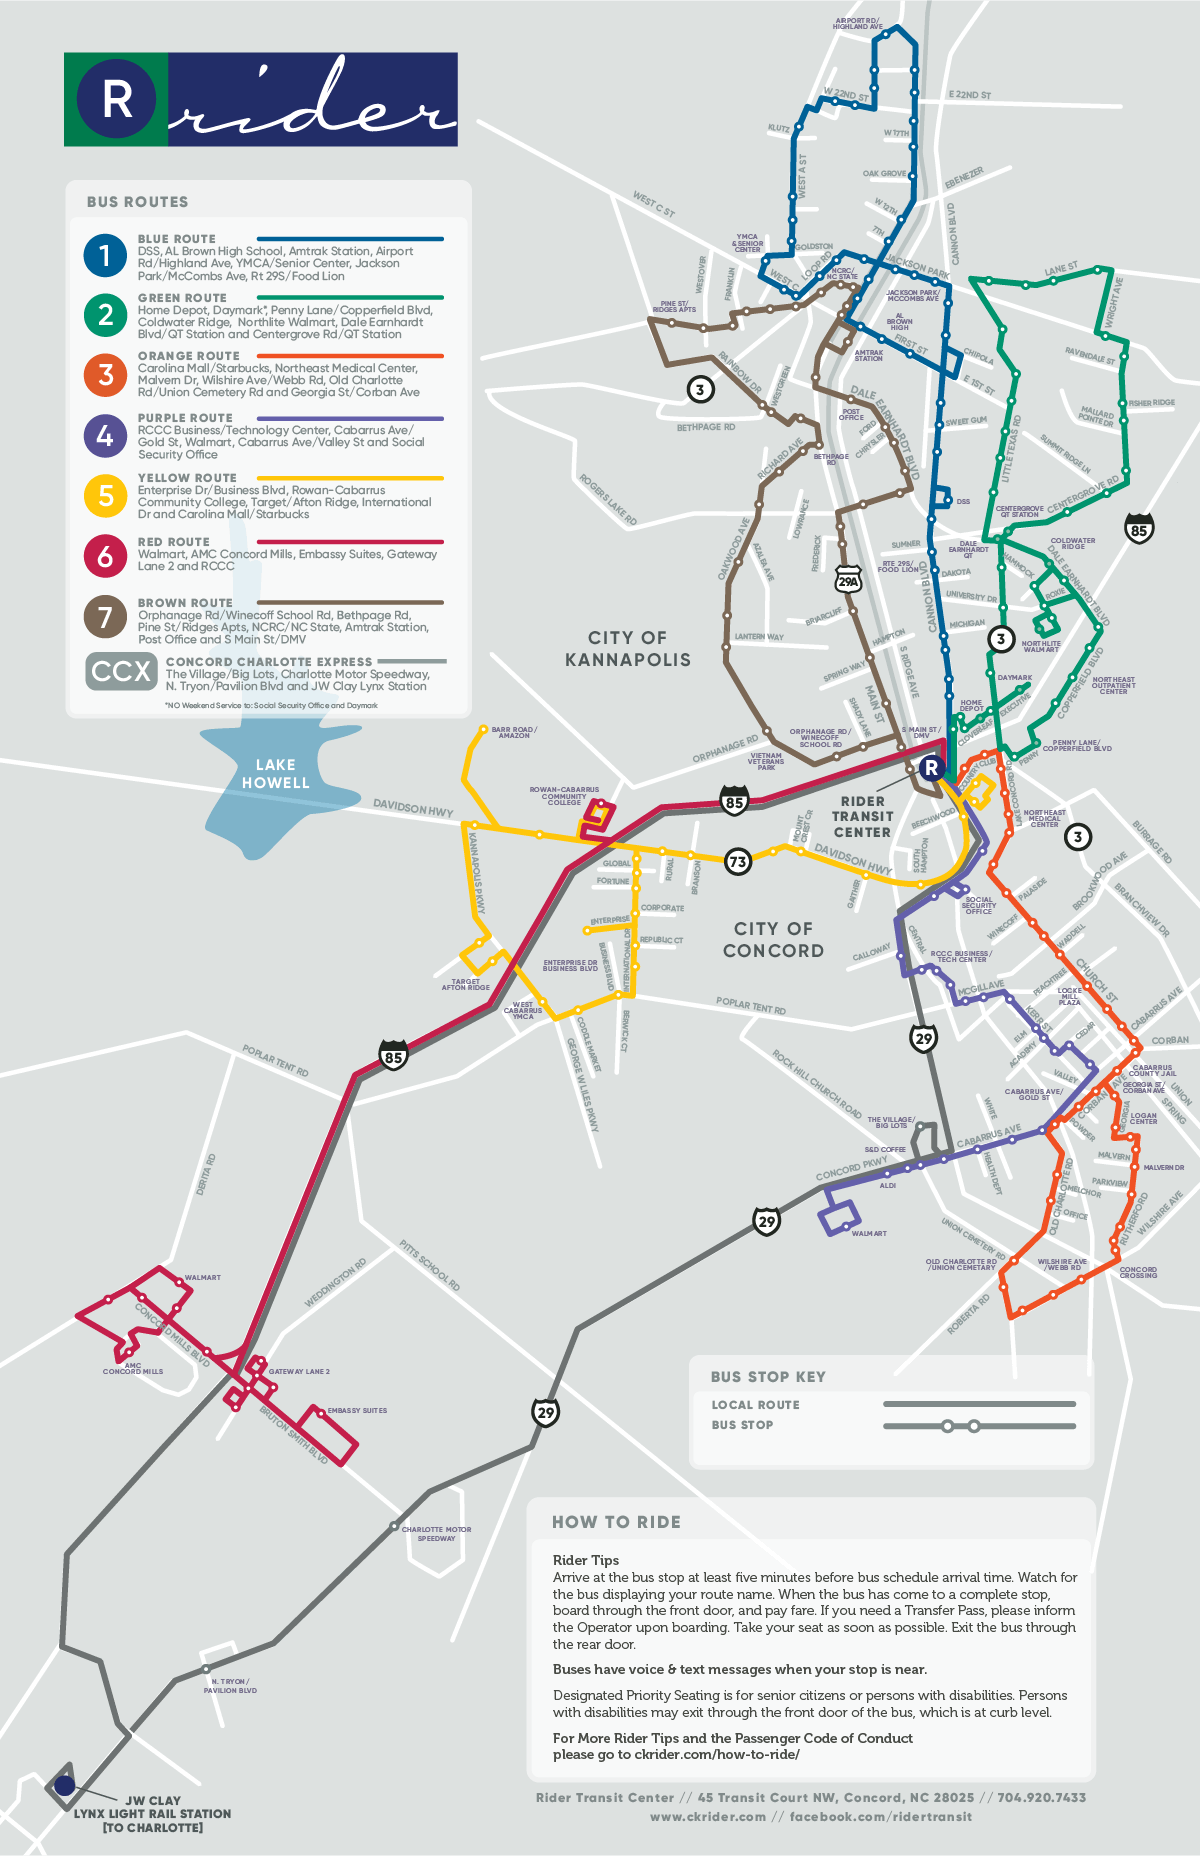 A full system map of our bus routes